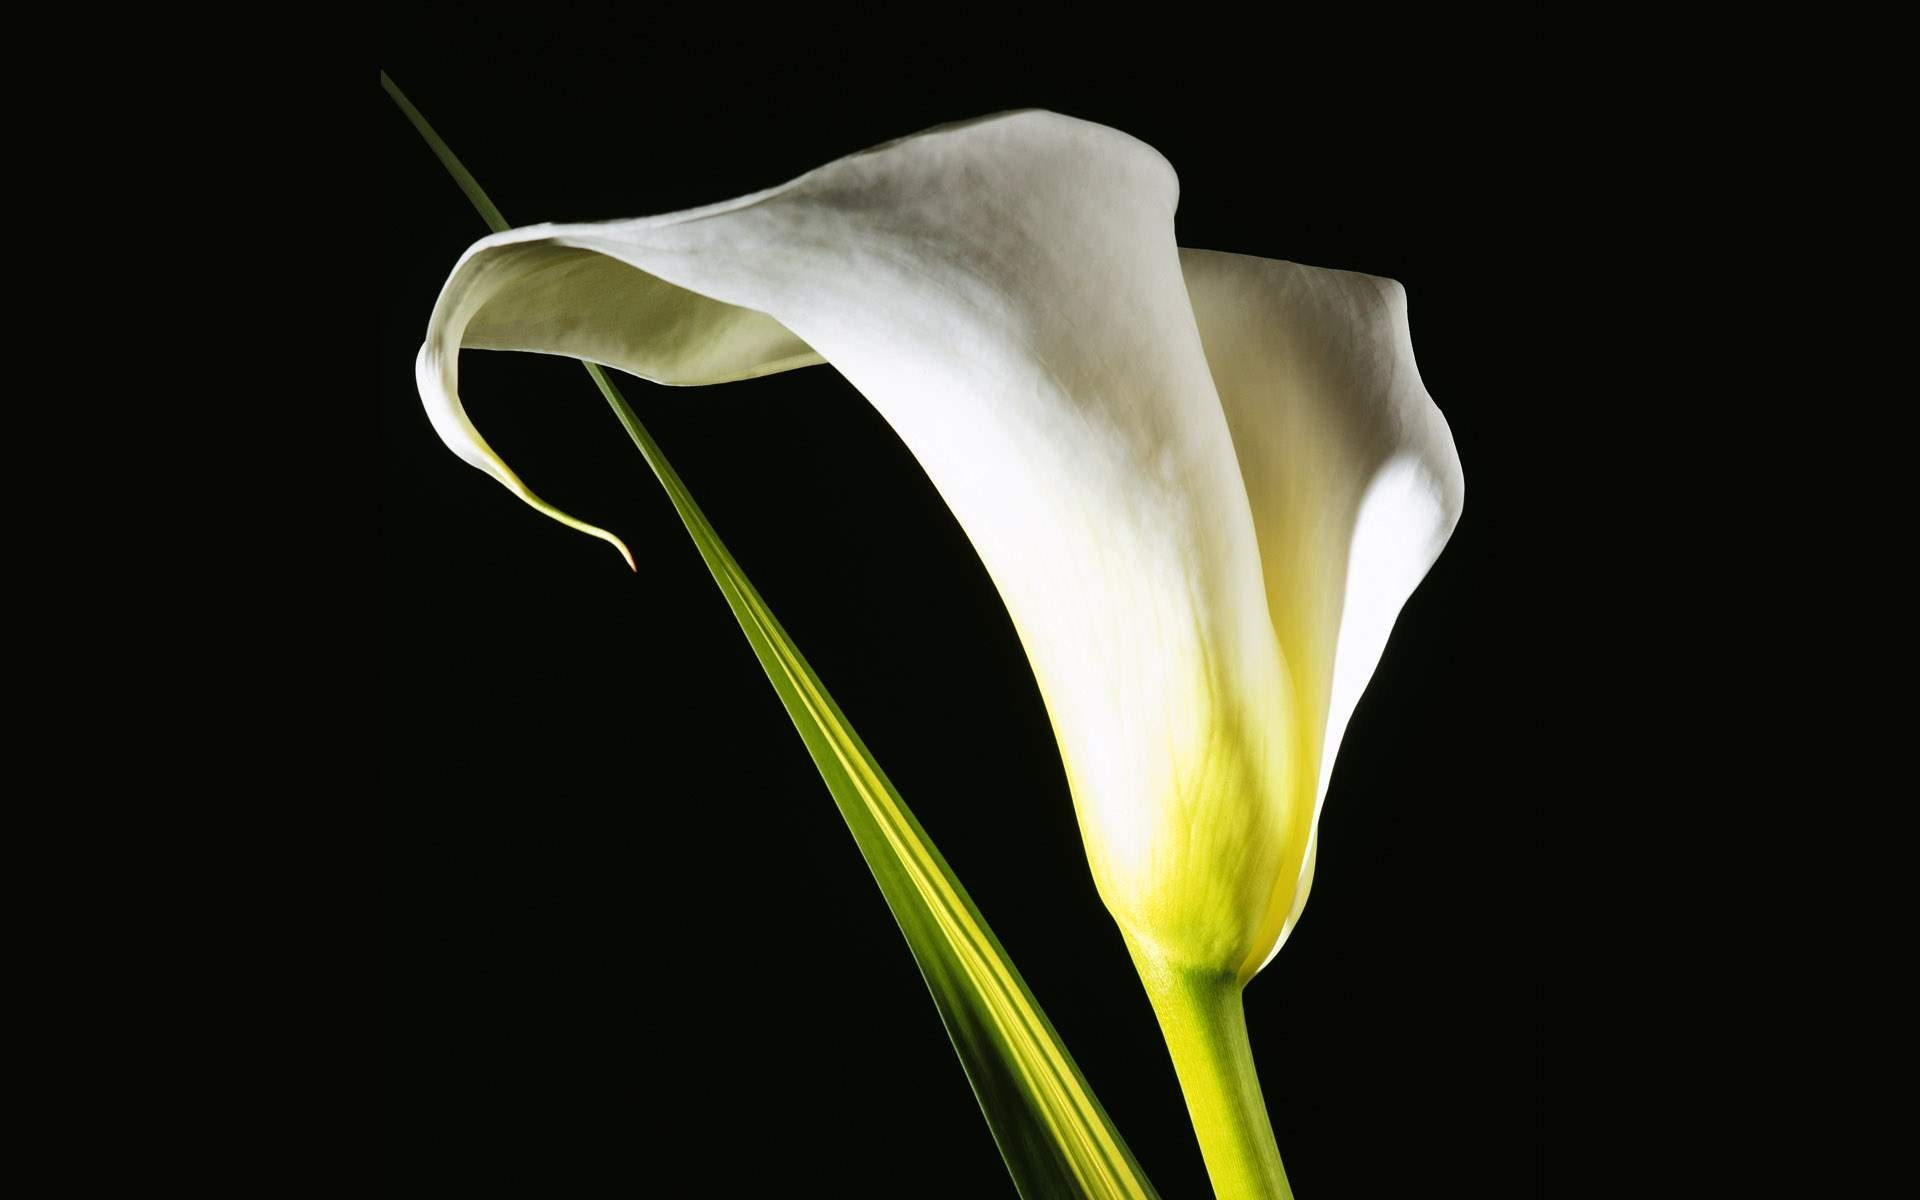 White animated flowers wallpapers pozadia strana wallpaper background tapety flower lily pictures calla beautiful